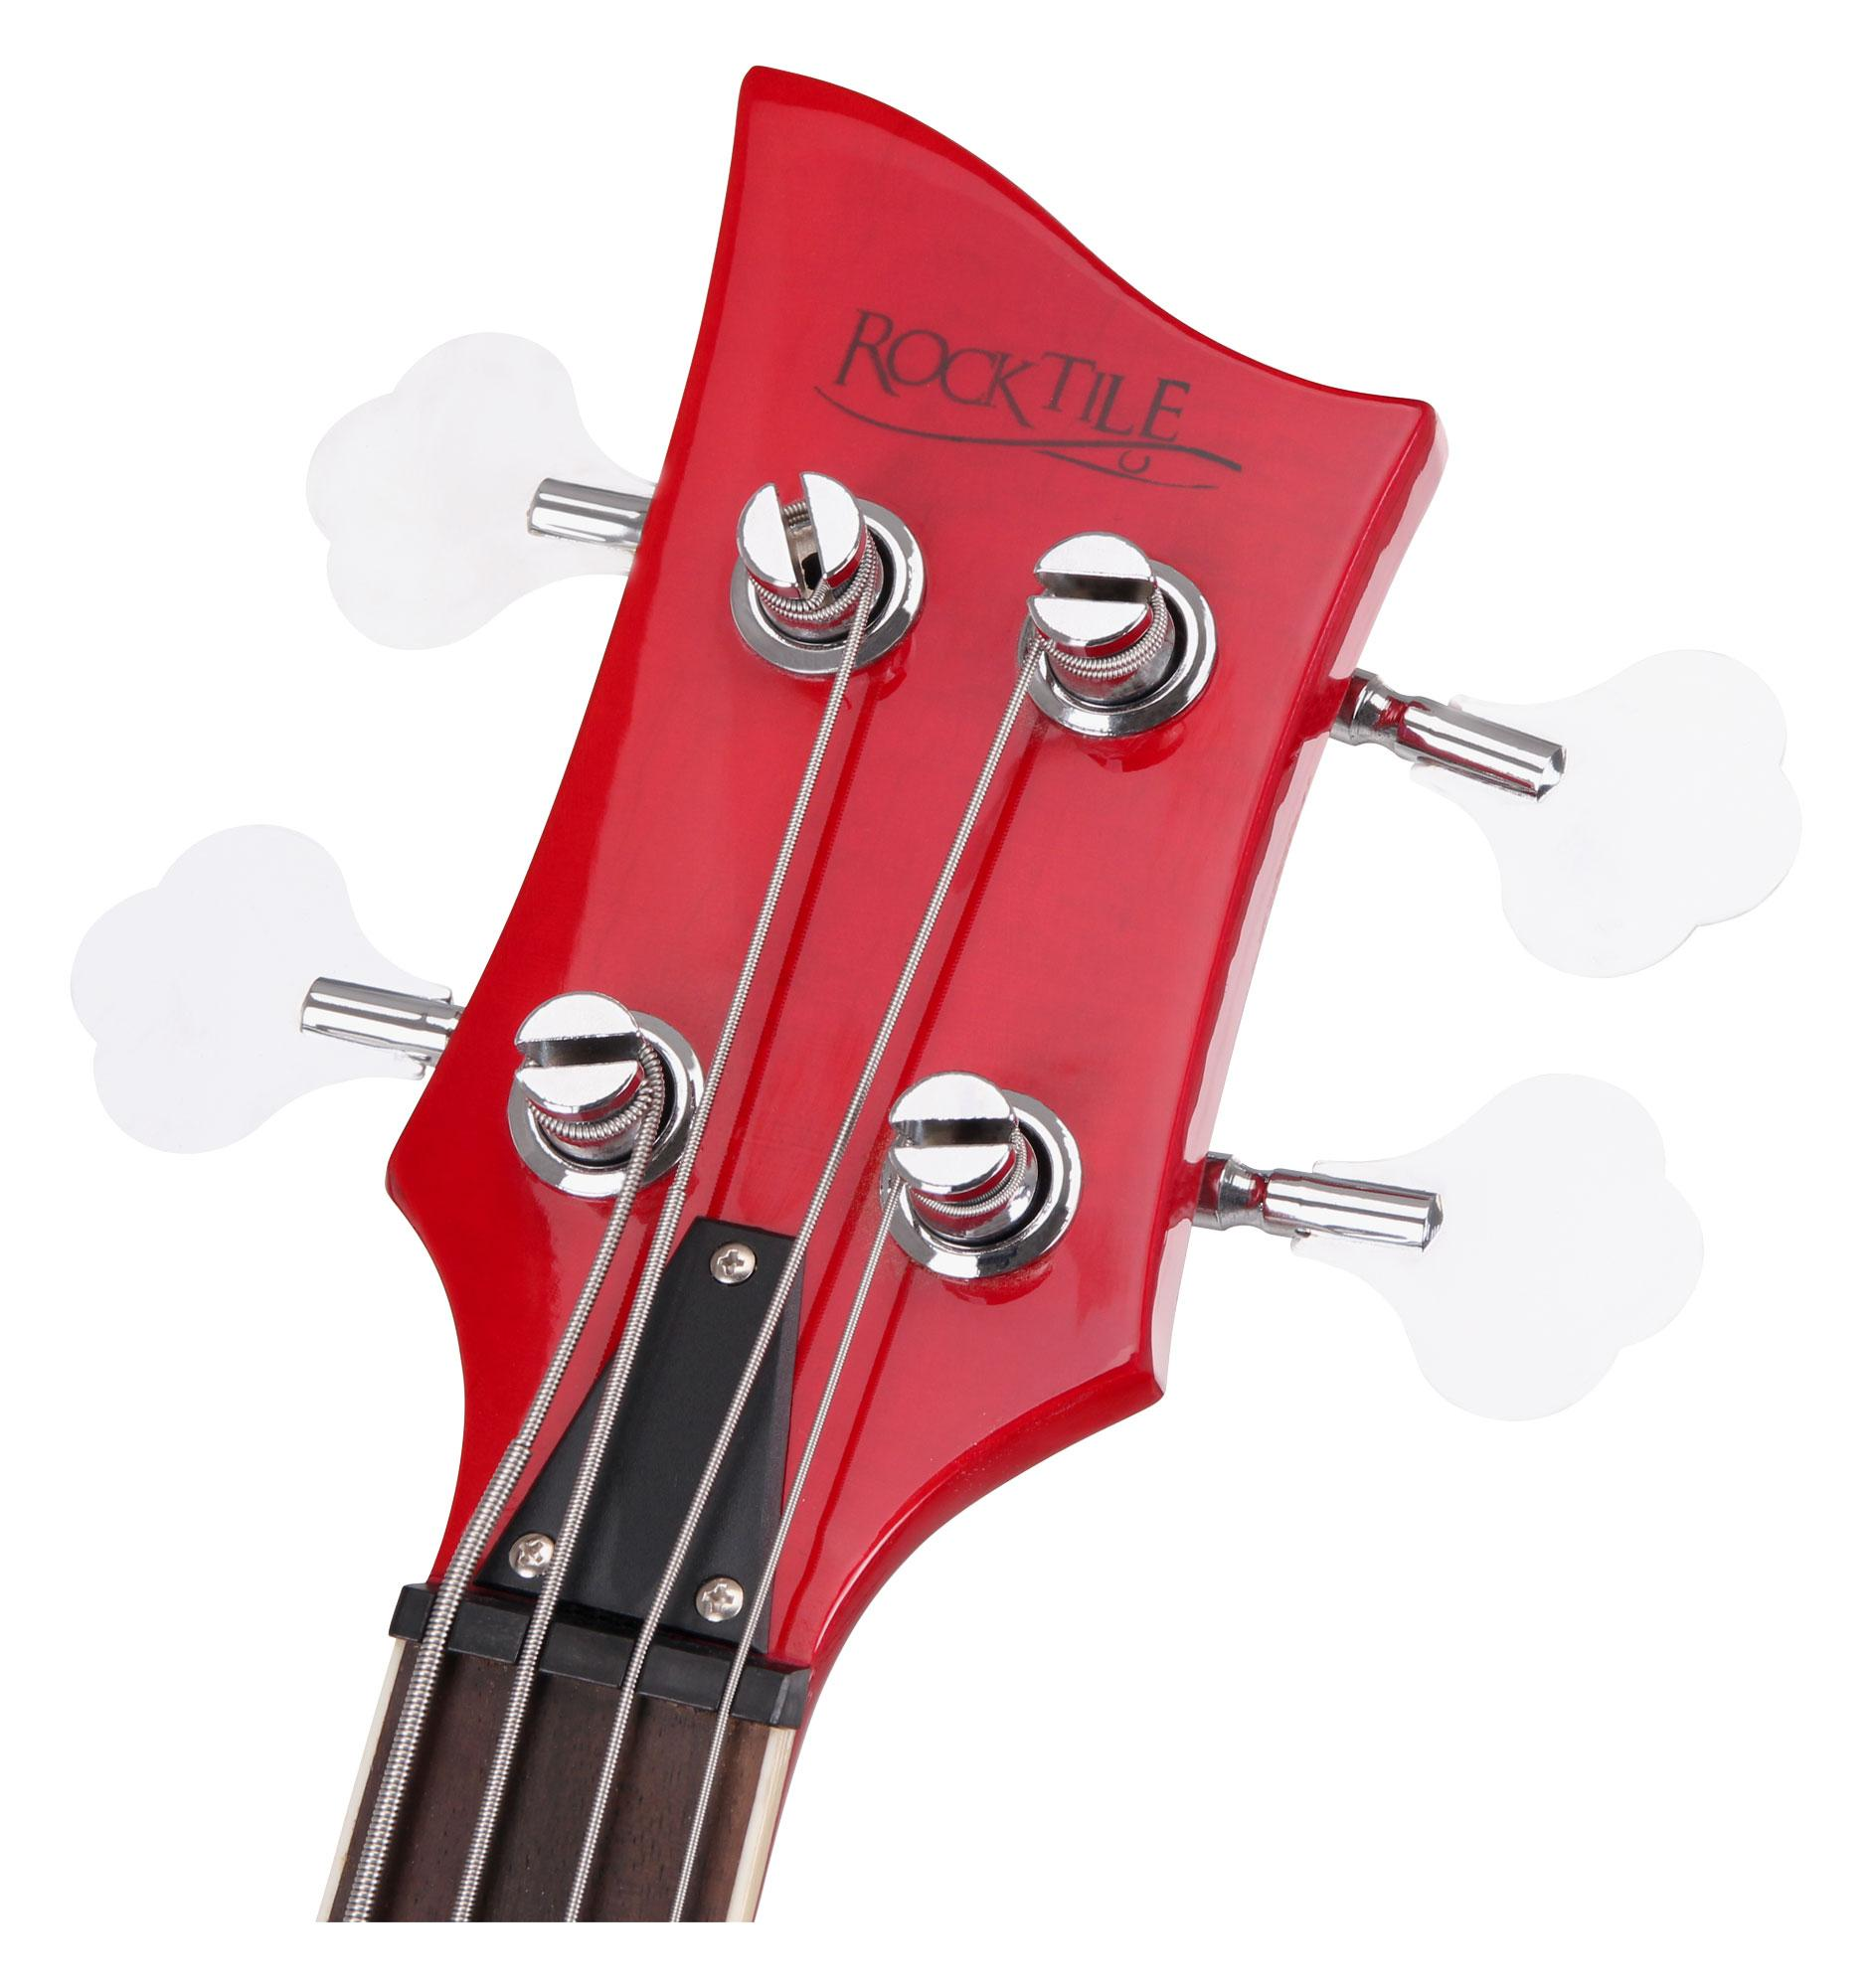 Bass HILLBILLY ROCK STAR Electric Acoustic Solid Brass Guitar Pick